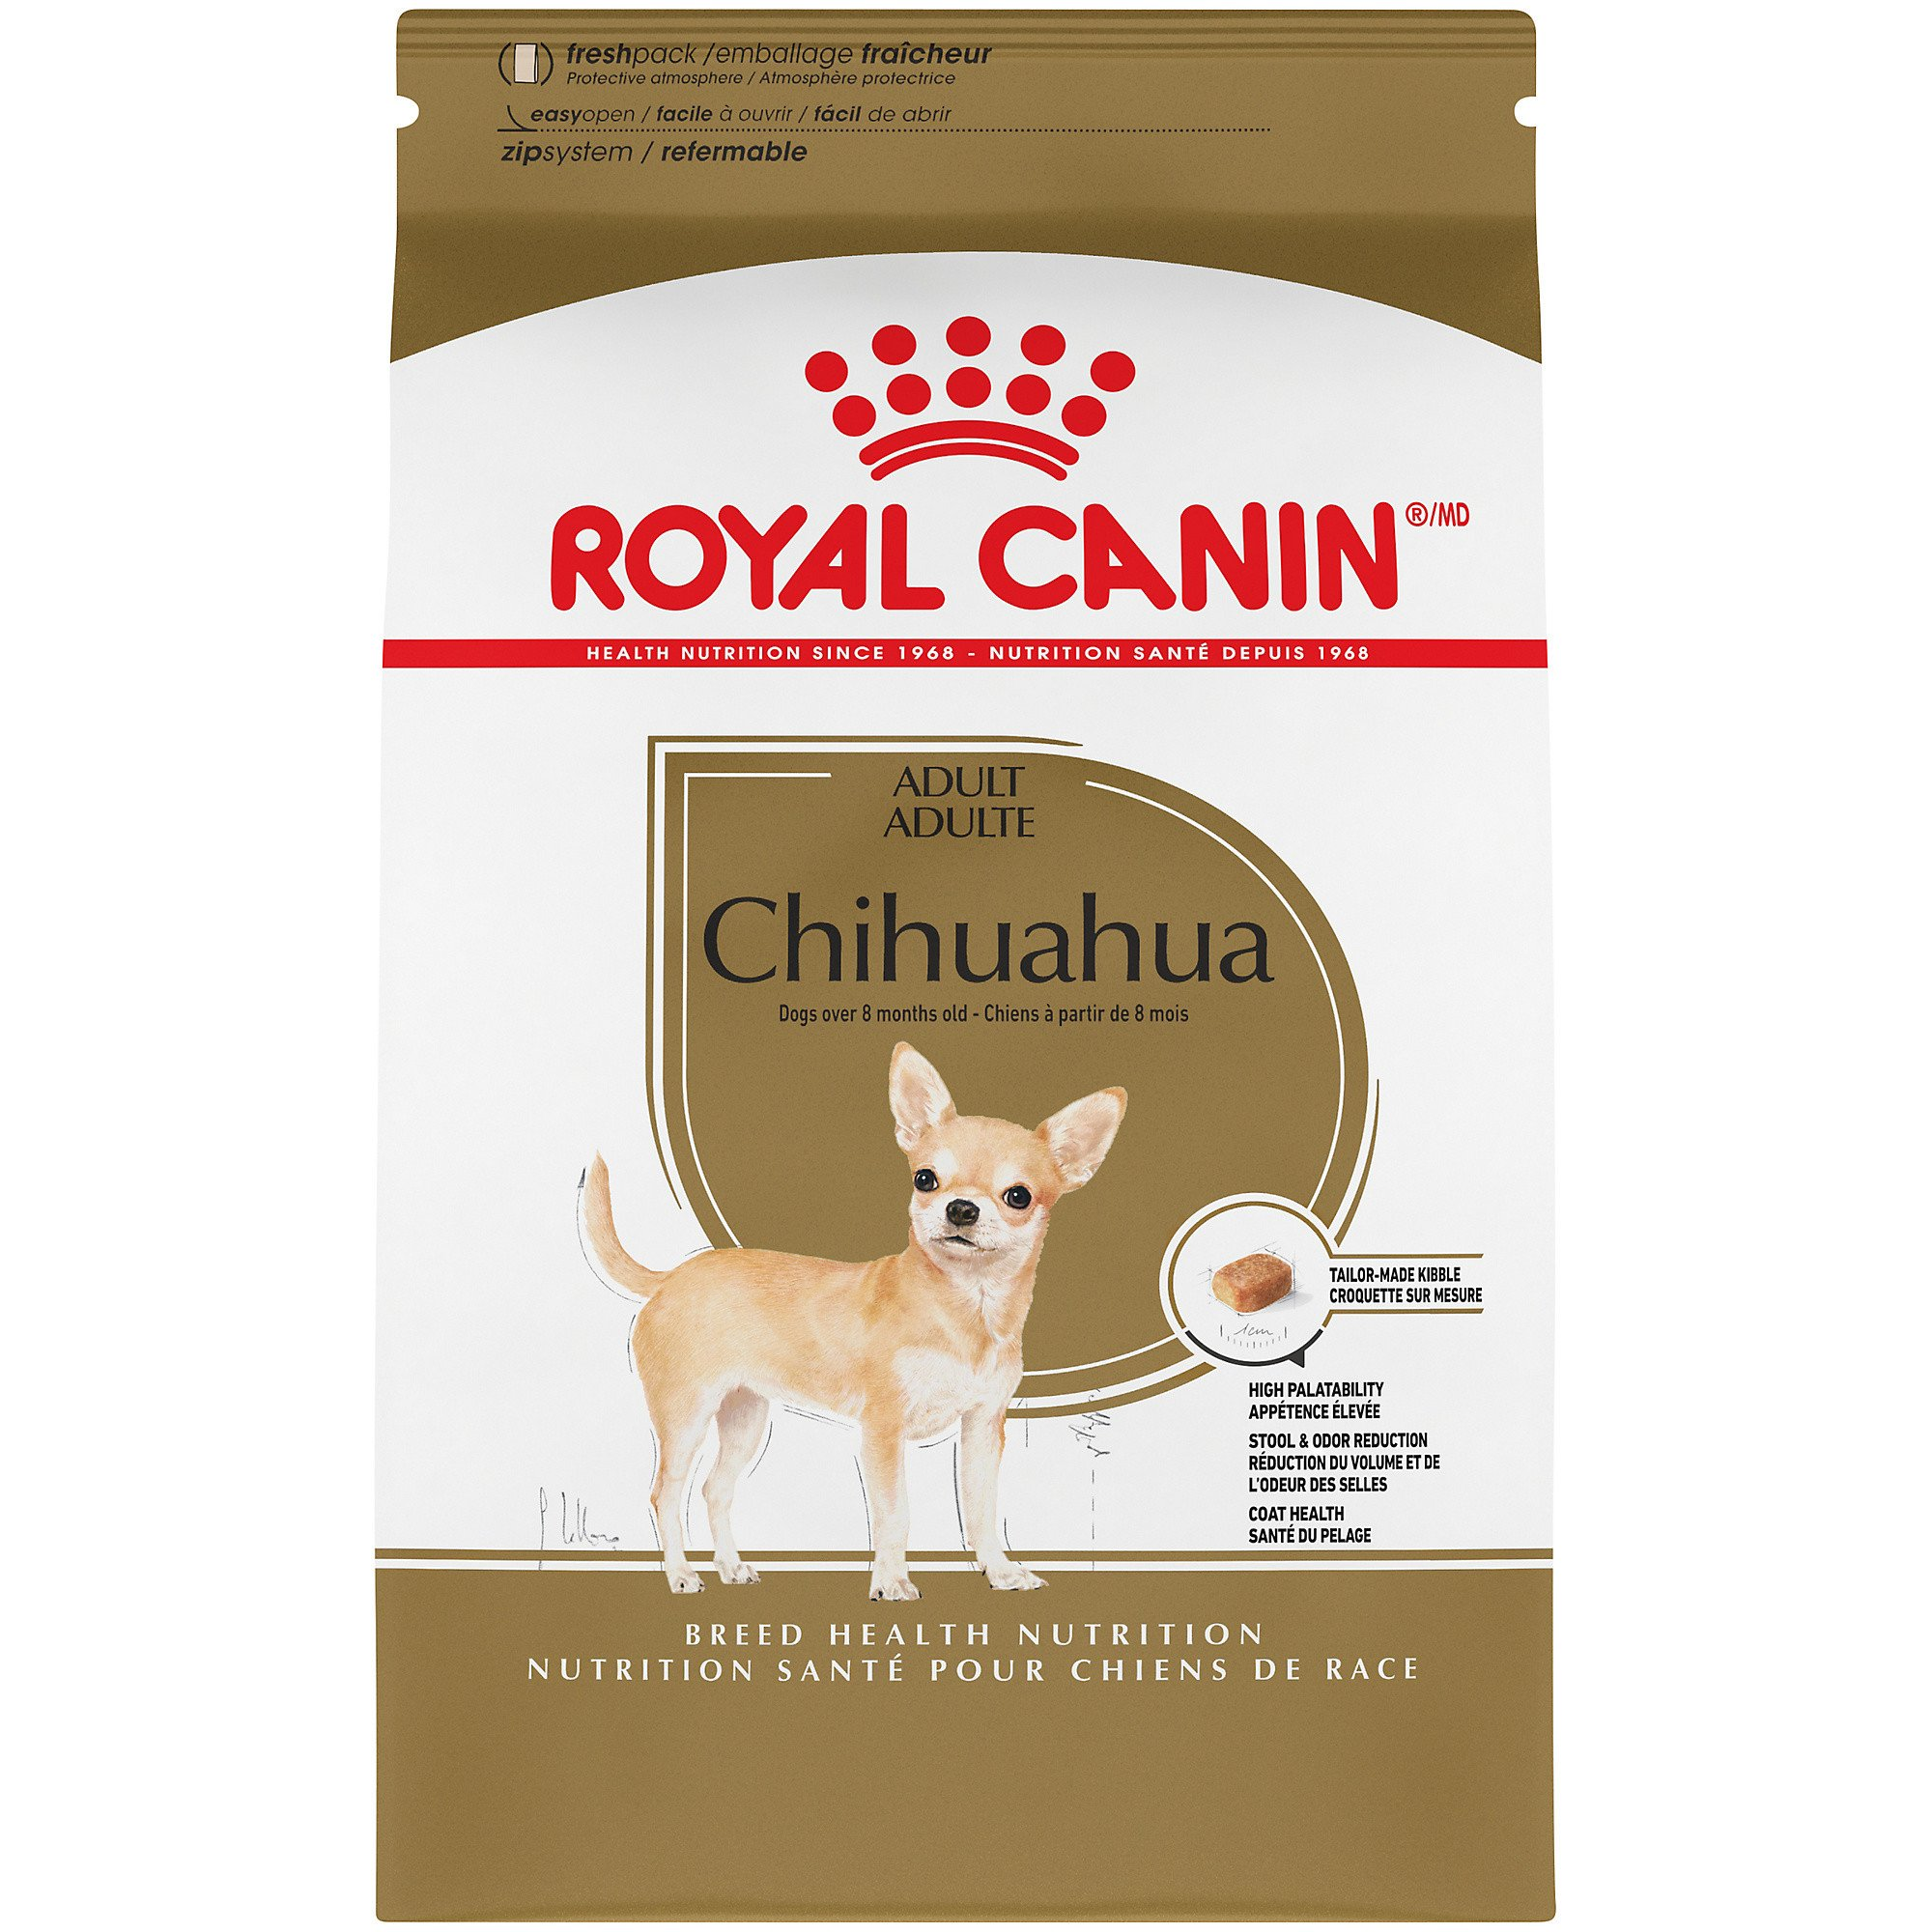 royal canin breed health nutrition chihuahua dog food petco. Black Bedroom Furniture Sets. Home Design Ideas